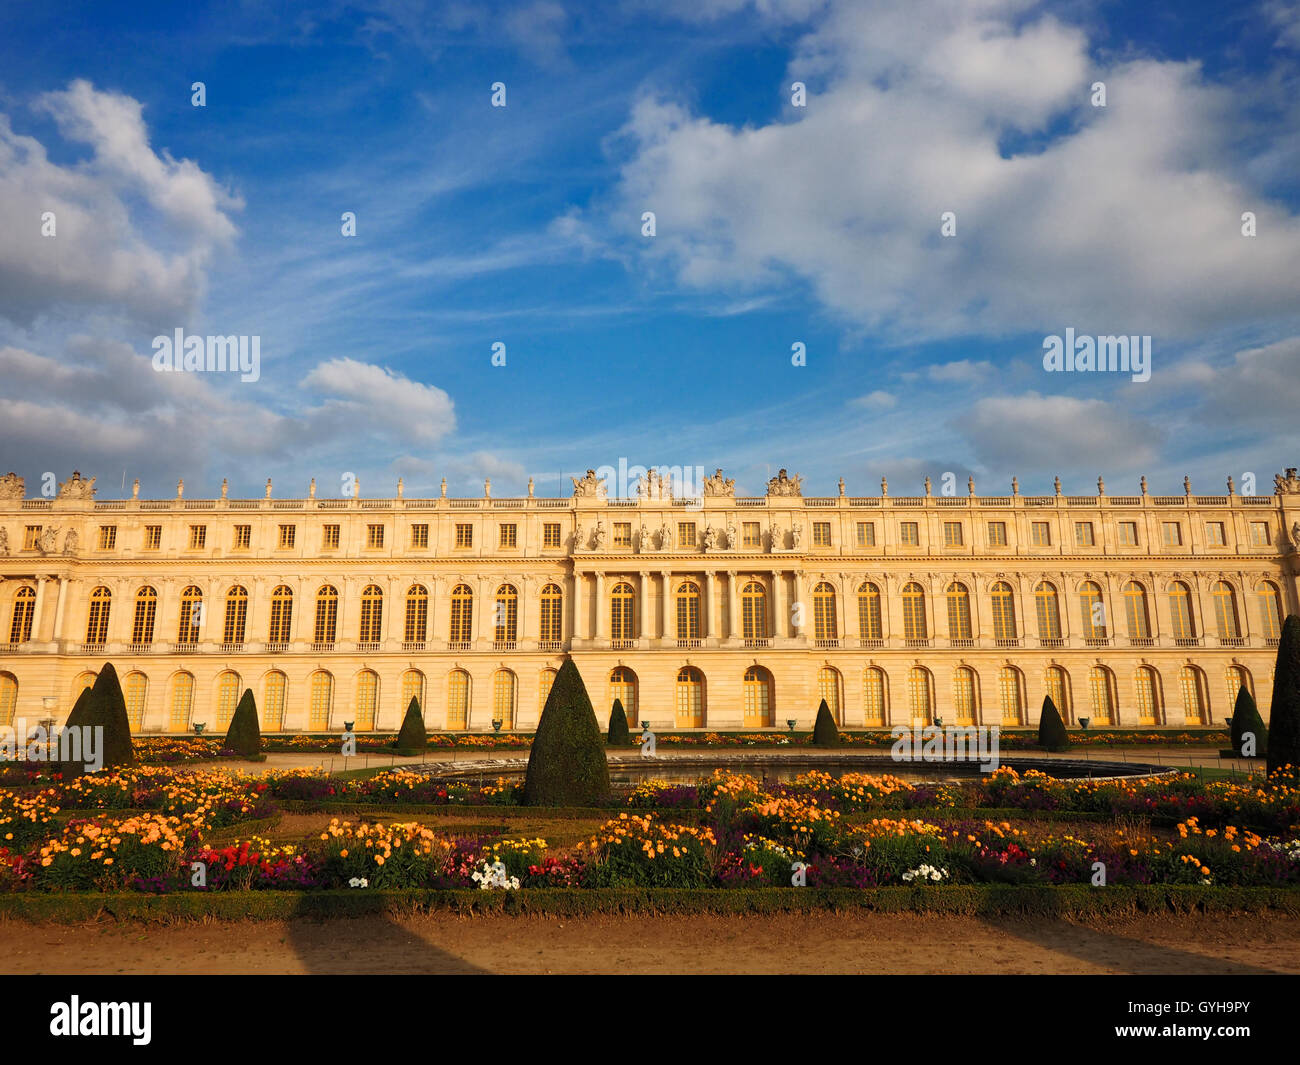 Facade of Palace of Versailles from Parterre du Midi in the evening, France - Stock Image